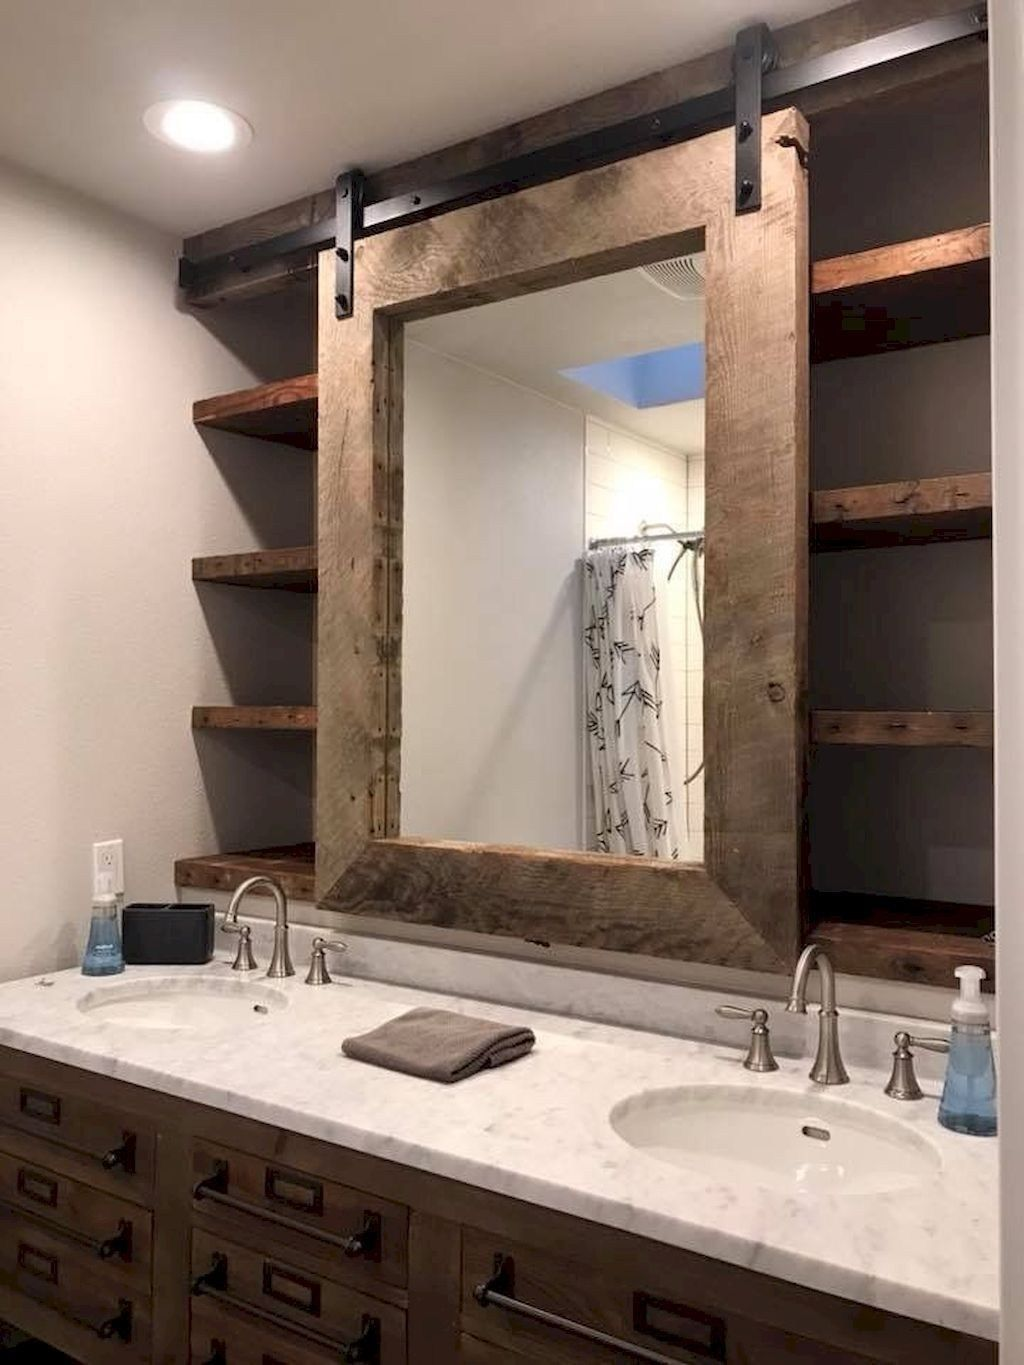 46 + Lovely Rustic Small Bathroom Remodel - Home By X #smallbathroomremodel